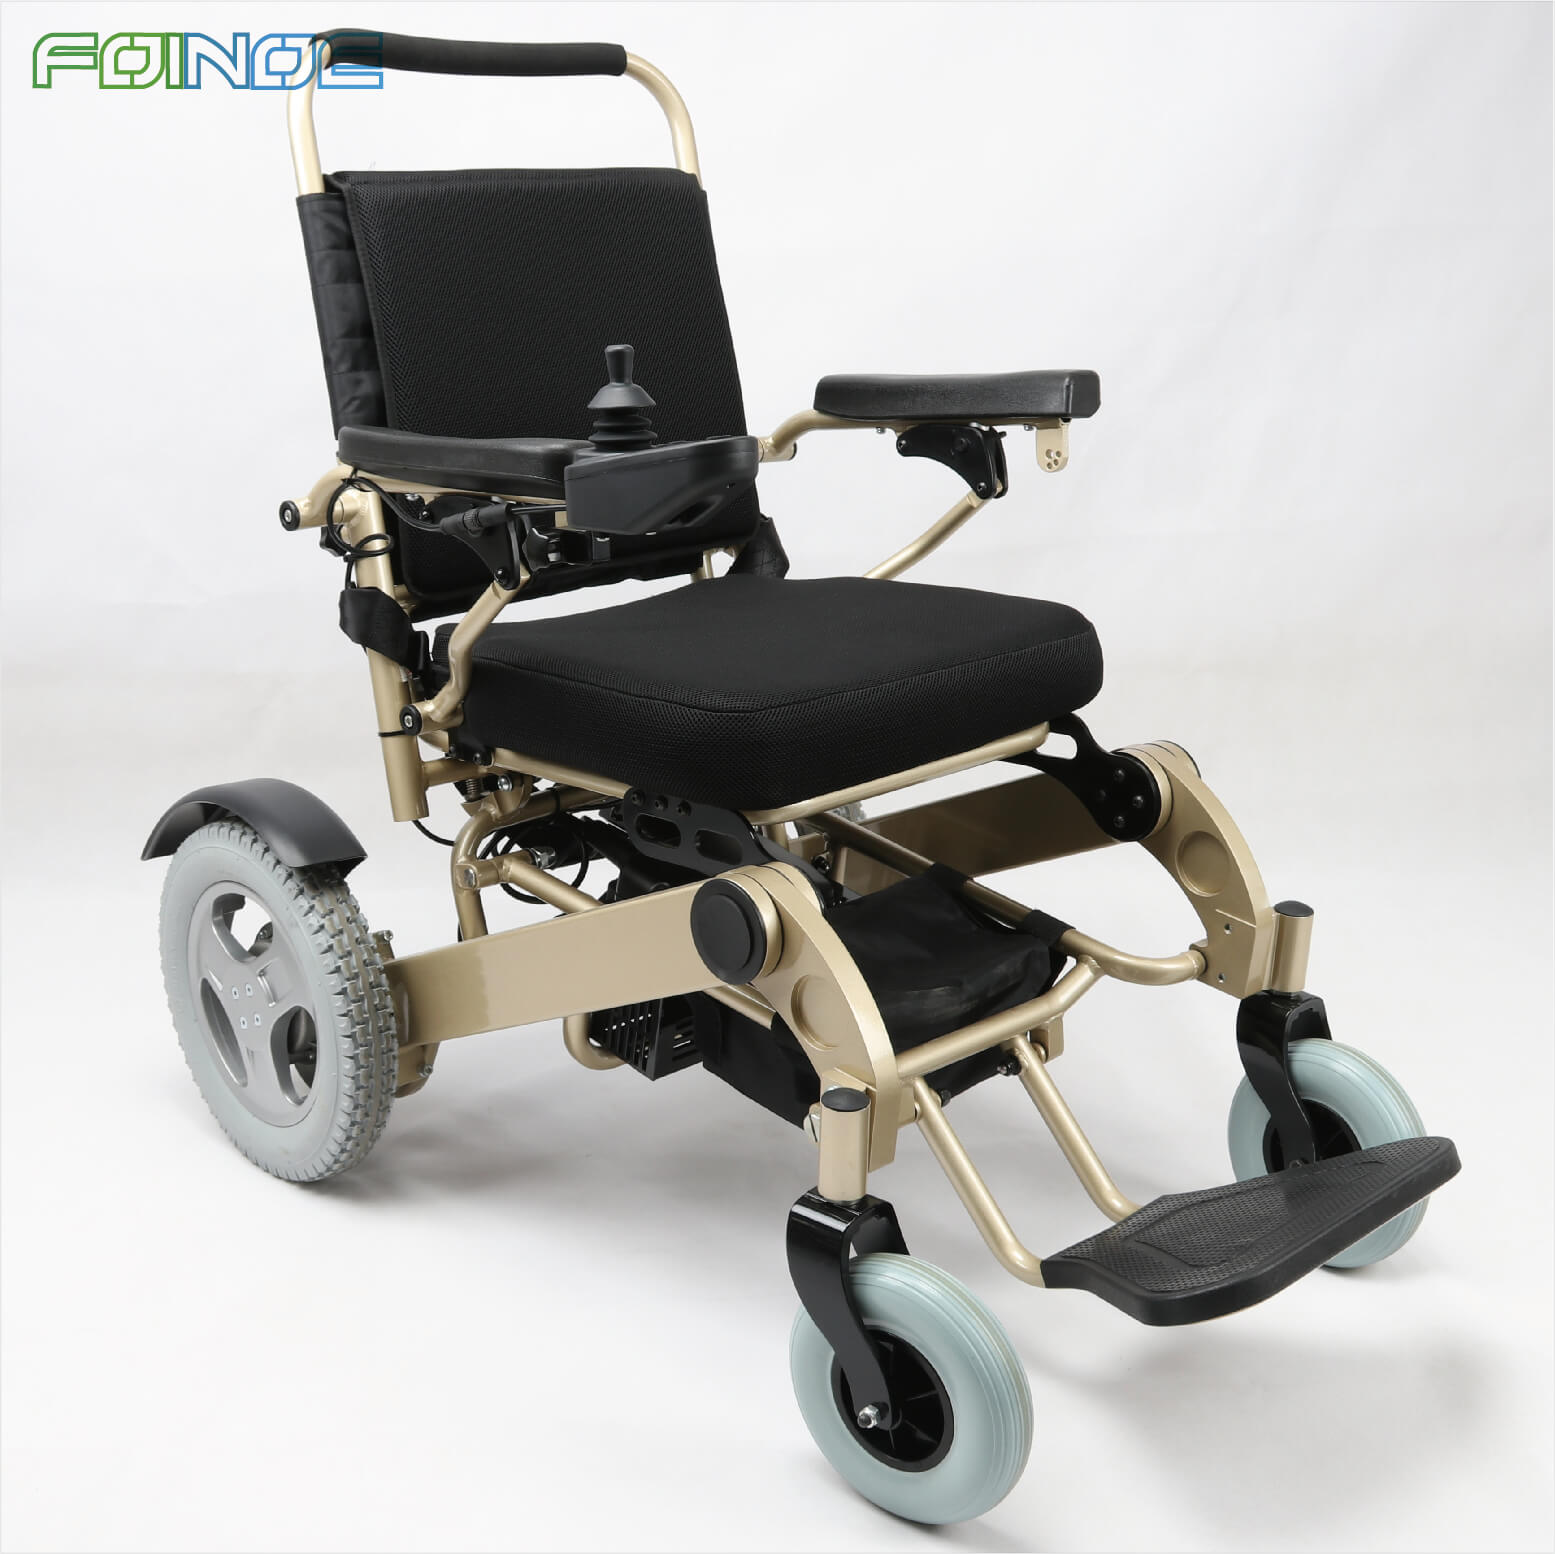 Folding Lightweight Motorized Wheelchair for Adults